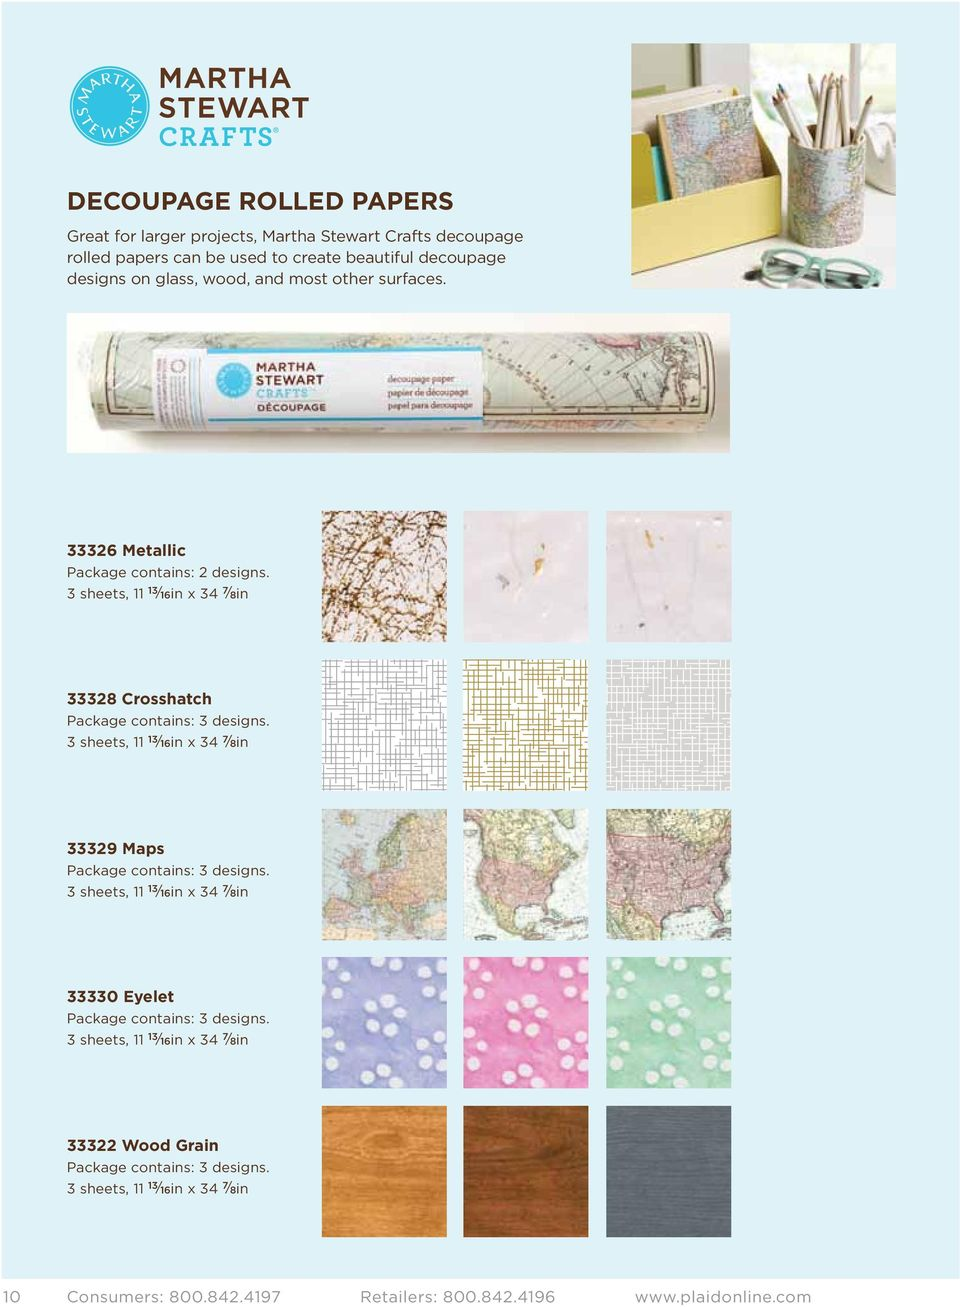 3 sheets, 11 13 / 16in x 34 7 / 8in 33329 Maps Package contains: 3 designs. 3 sheets, 11 13 / 16in x 34 7 / 8in 33330 Eyelet Package contains: 3 designs.